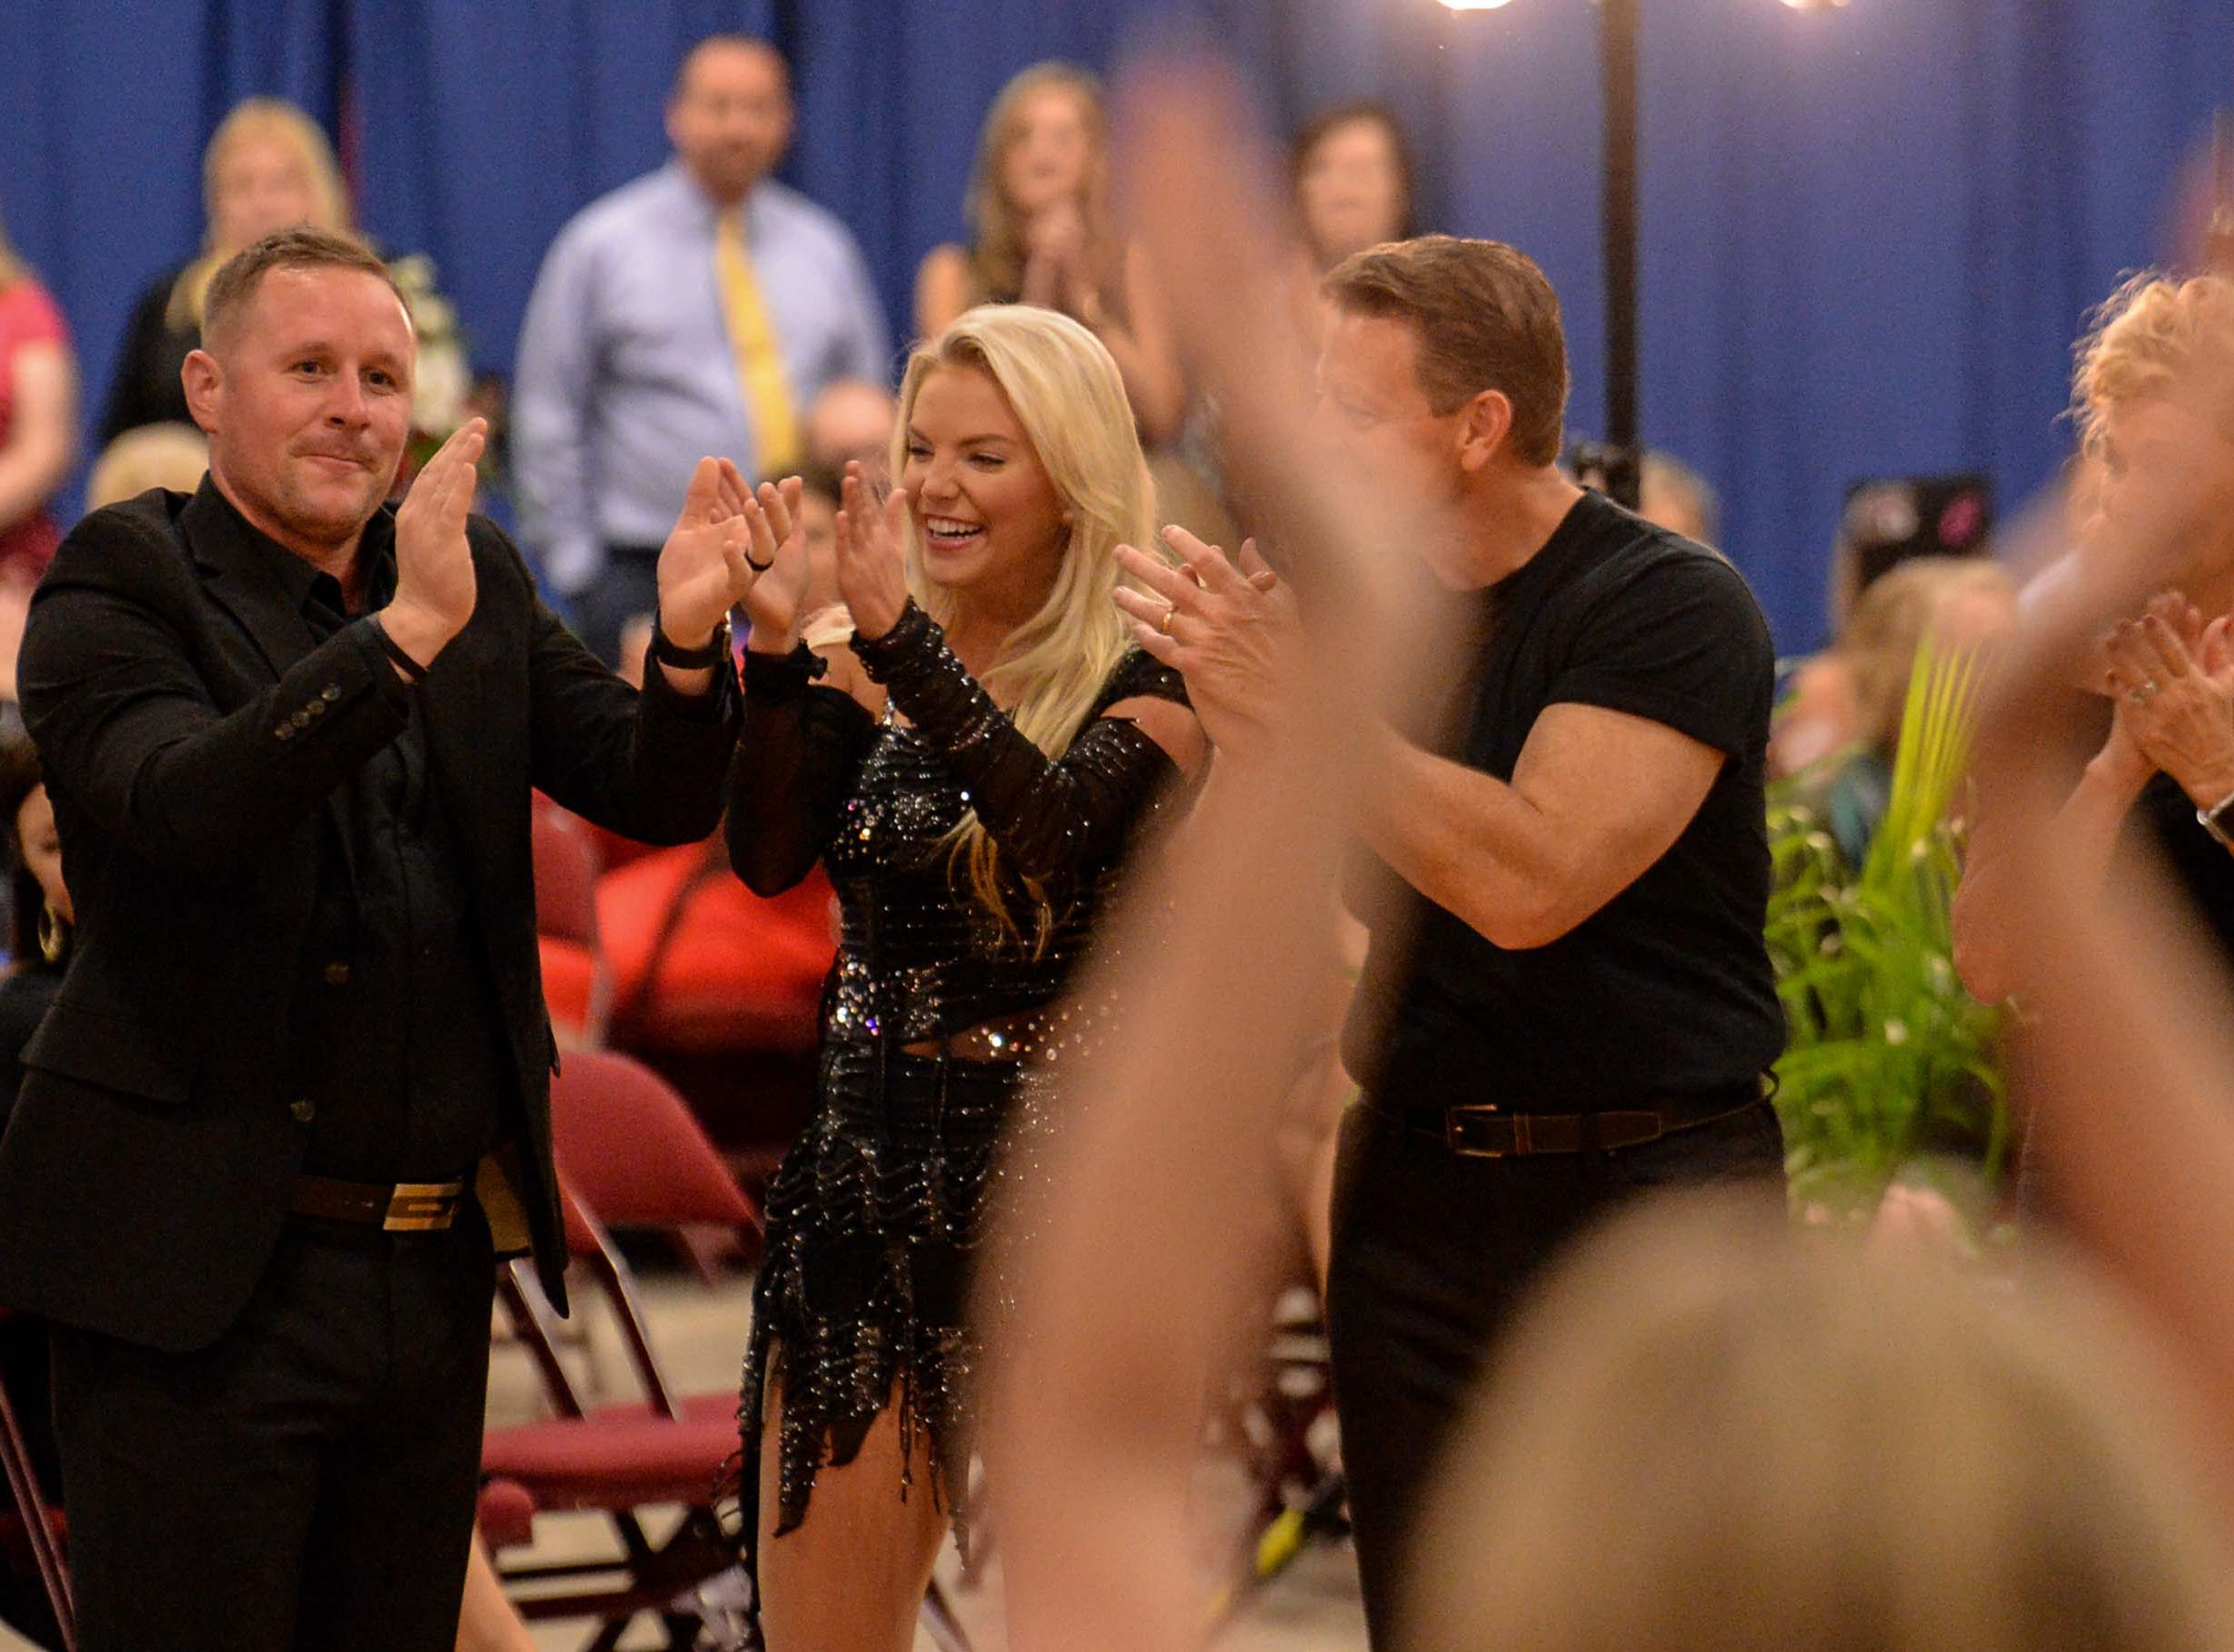 "Jeremy Caldwell, left, and Ansley Cartee react winning the most money raised trophy during the 13th Dancing For Our Heroes event with the theme ""Welcome to Las Vegas"" at the Civic Center of Anderson Thursday. The dance couple raised $35,848 for AnMed Health Foundation. The couple danced to song by Britney Spears. The ten dance couples raised money for different charities, dancing to acts who have residencies in Las Vegas."